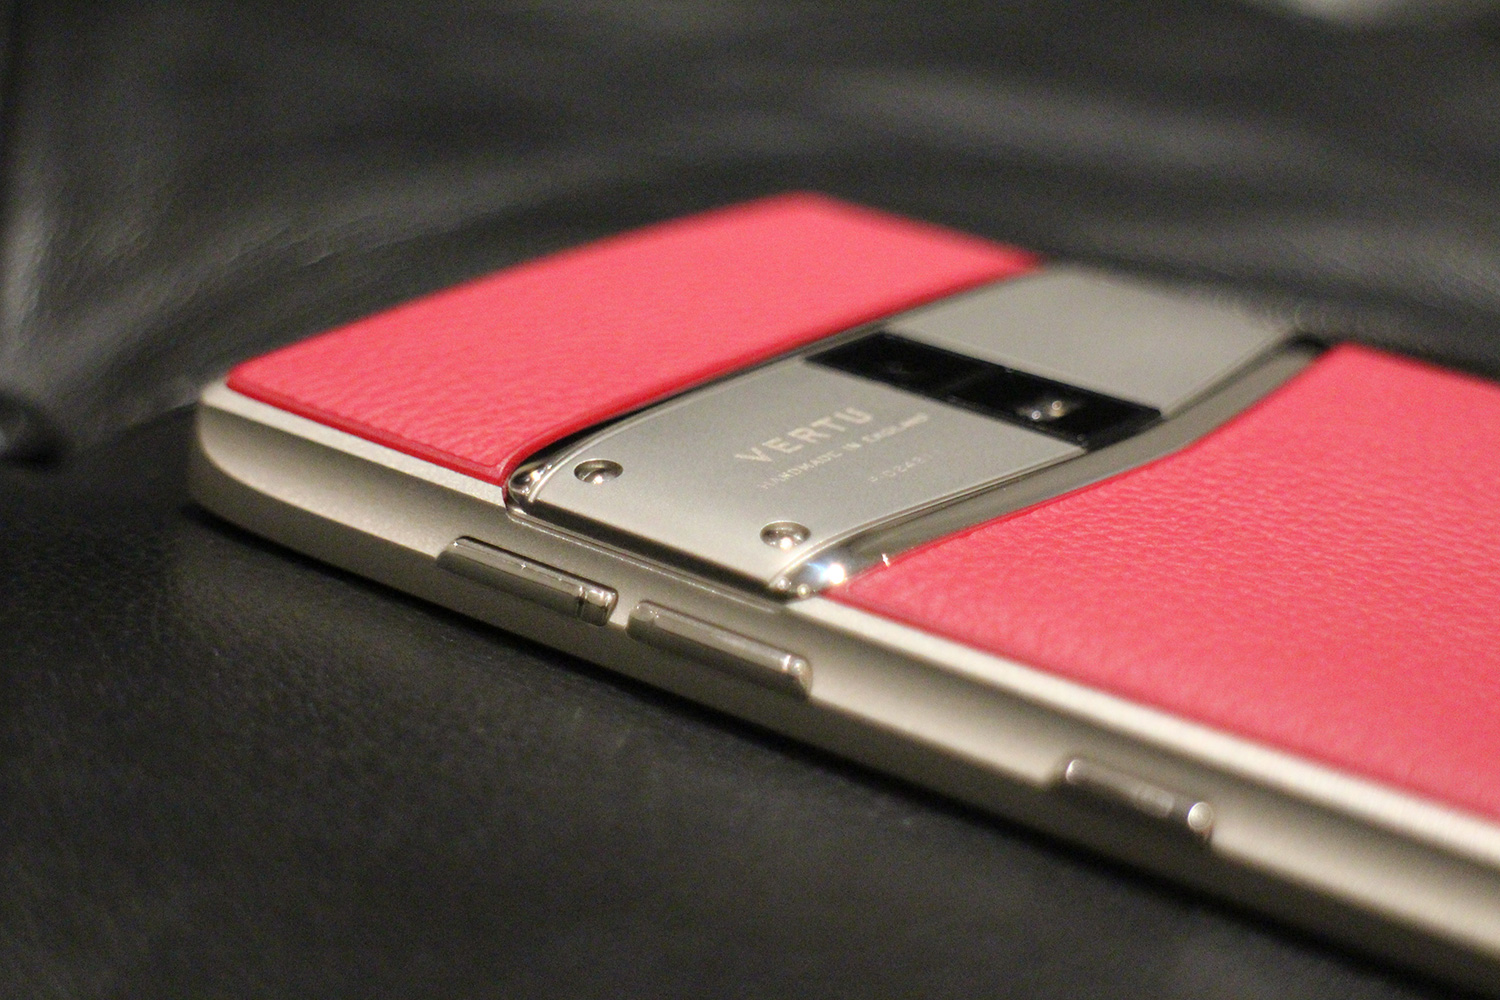 Luxury phone maker Vertu sells for £50 million to exiled Turkish businessman